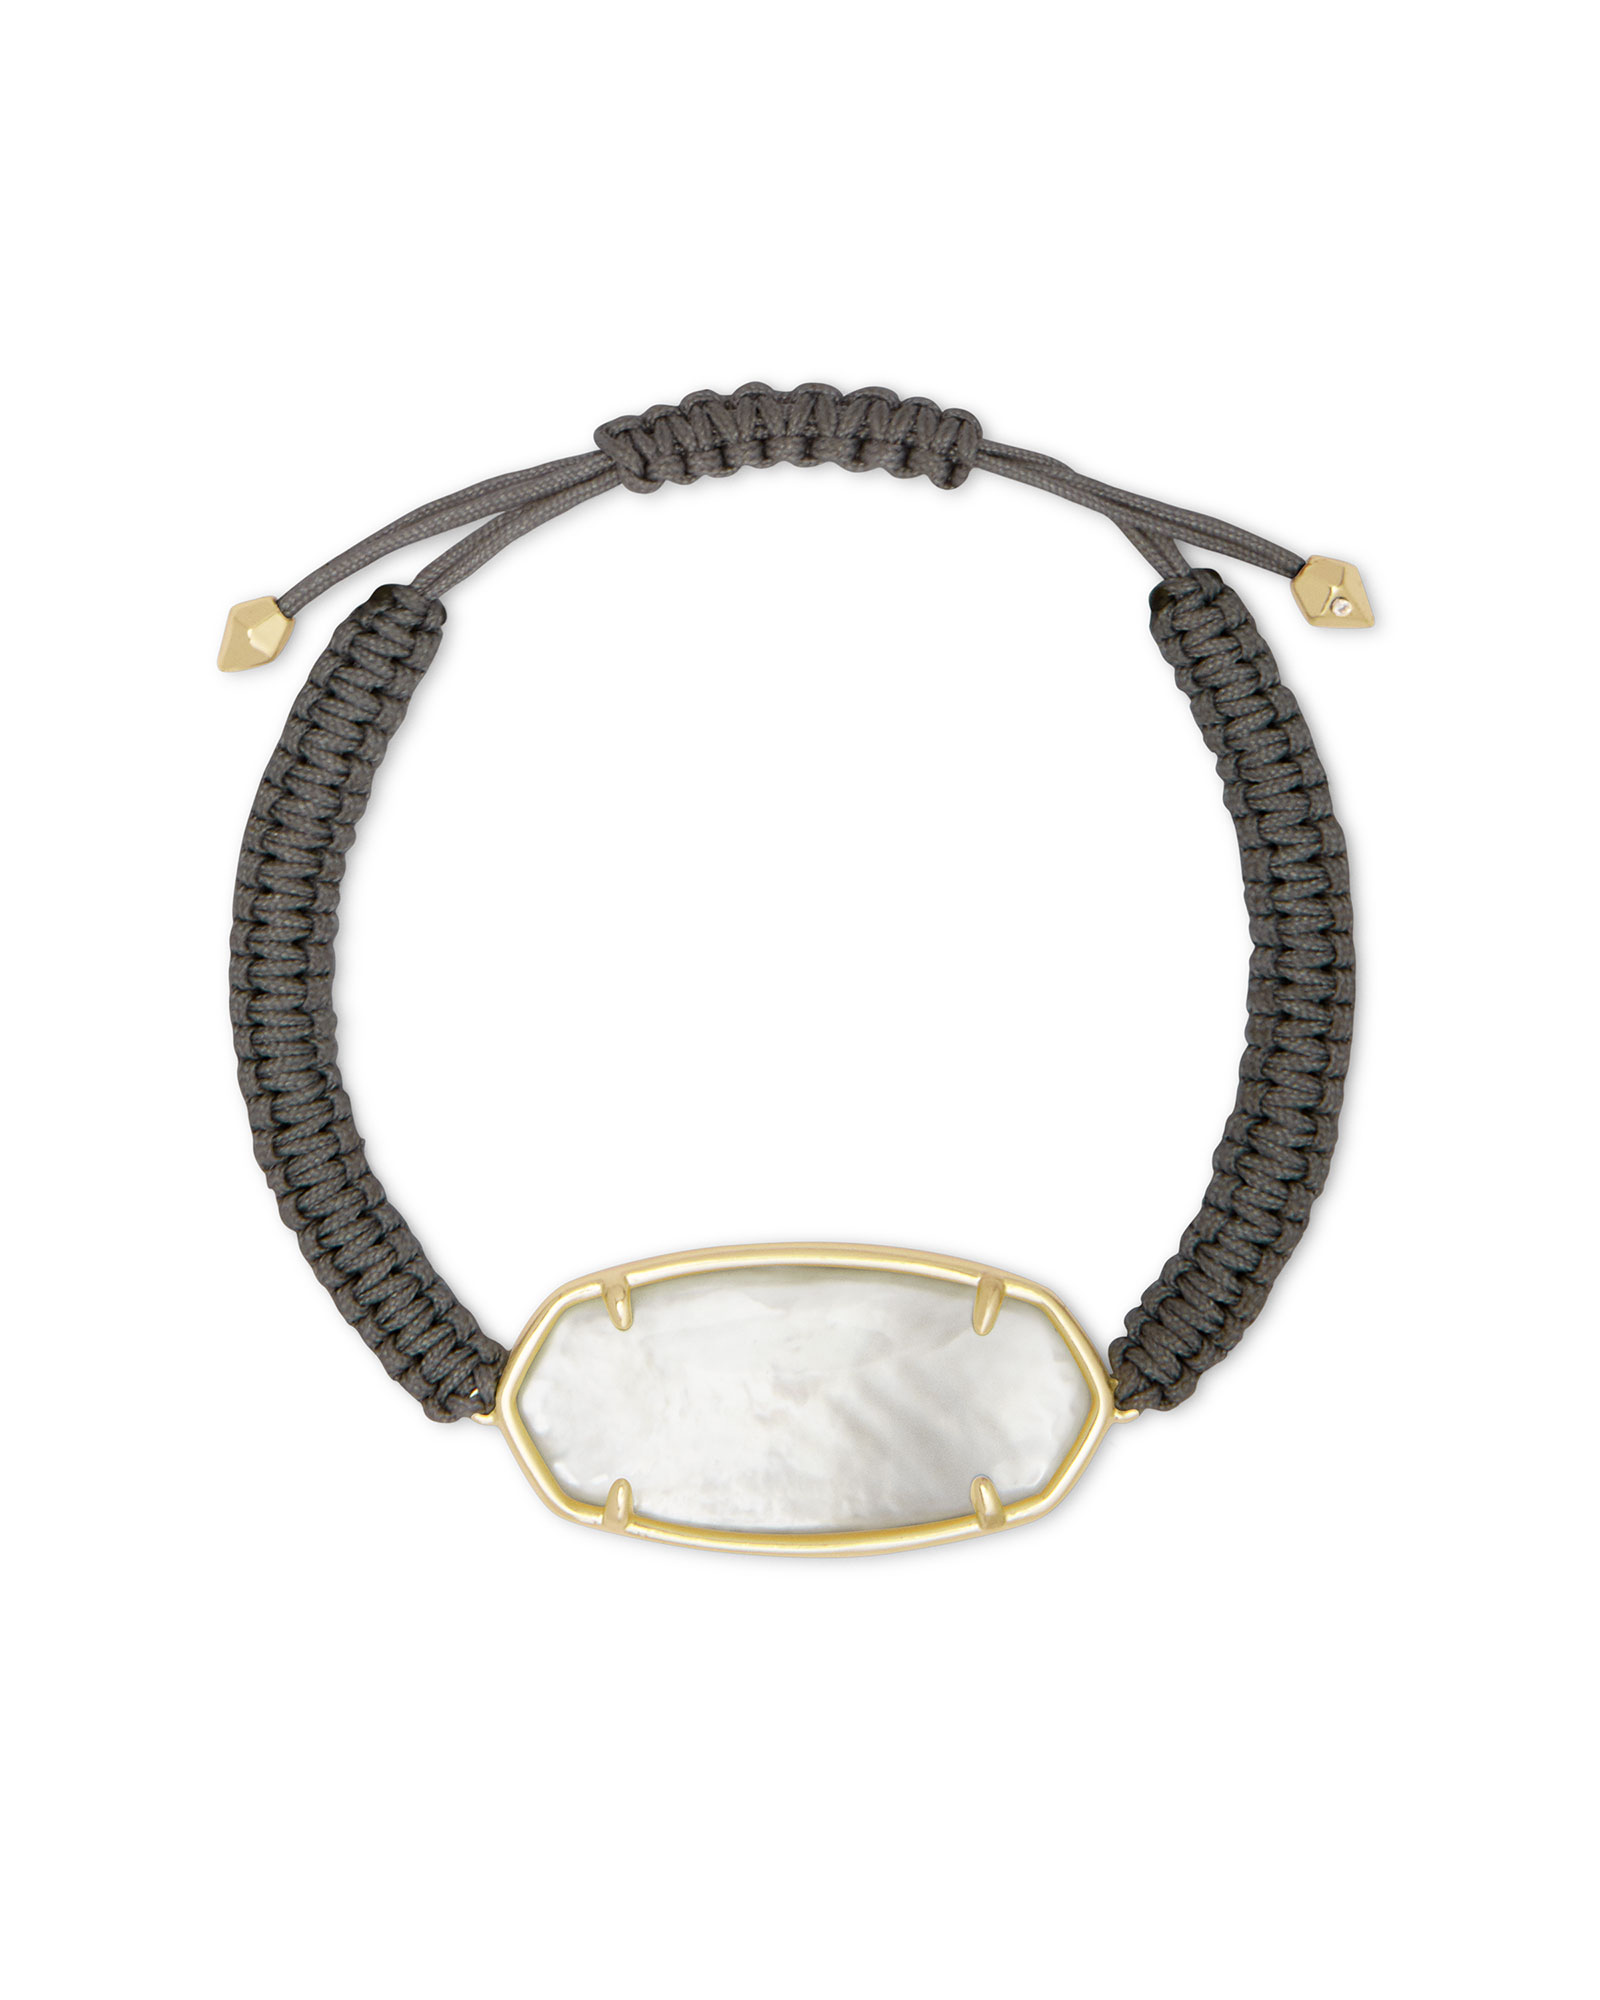 Elle Gold Friendship Bracelet in Ivory Mother-of-Pearl